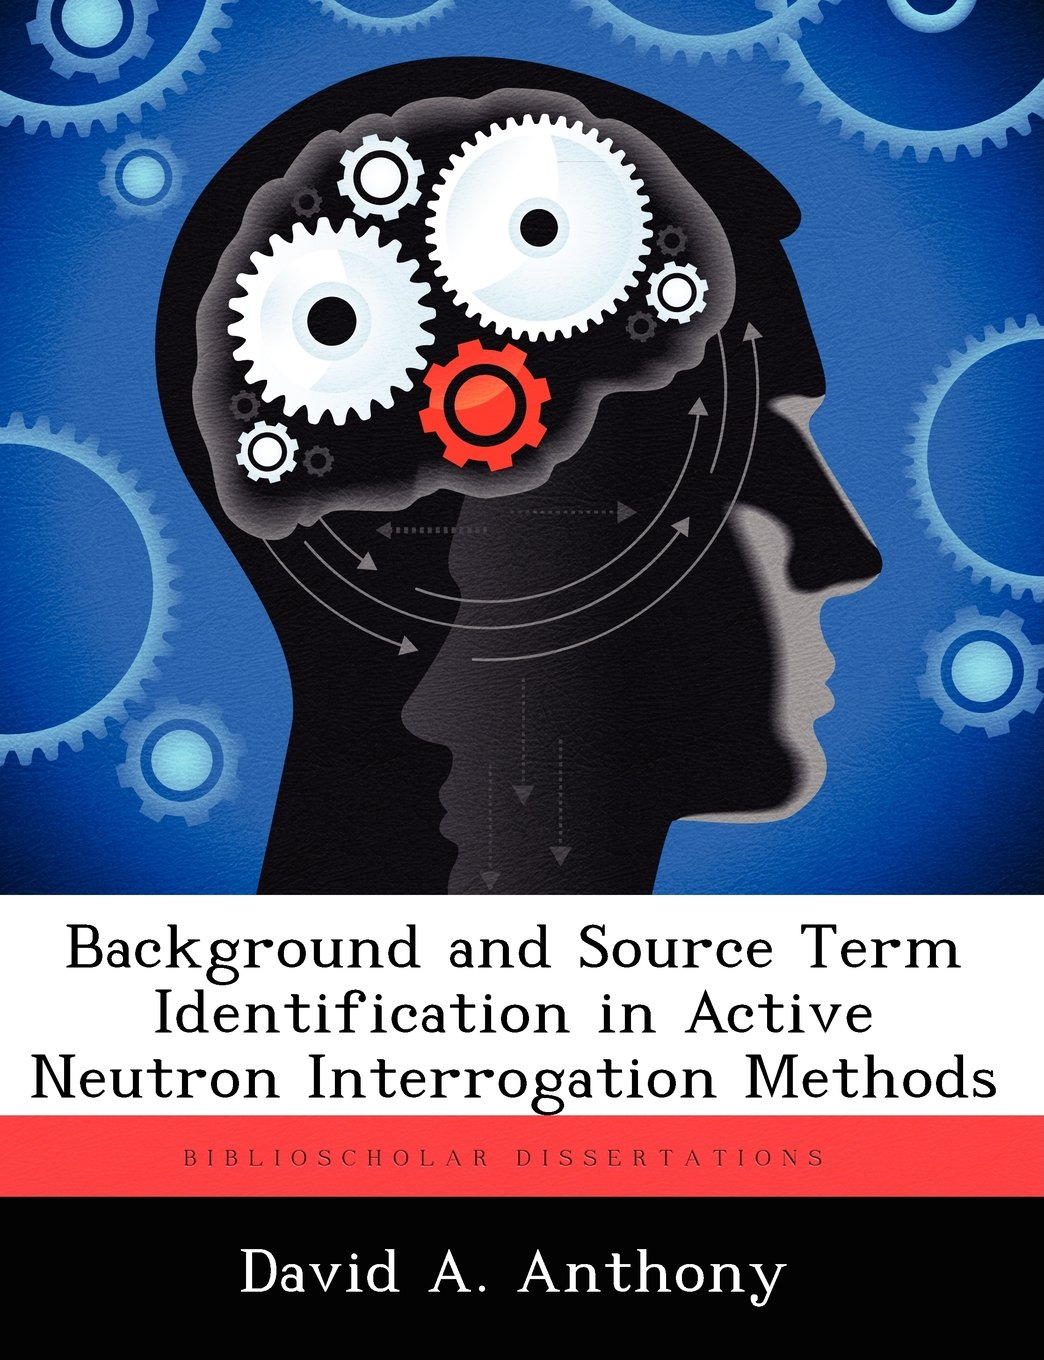 Download Background and Source Term Identification in Active Neutron Interrogation Methods PDF